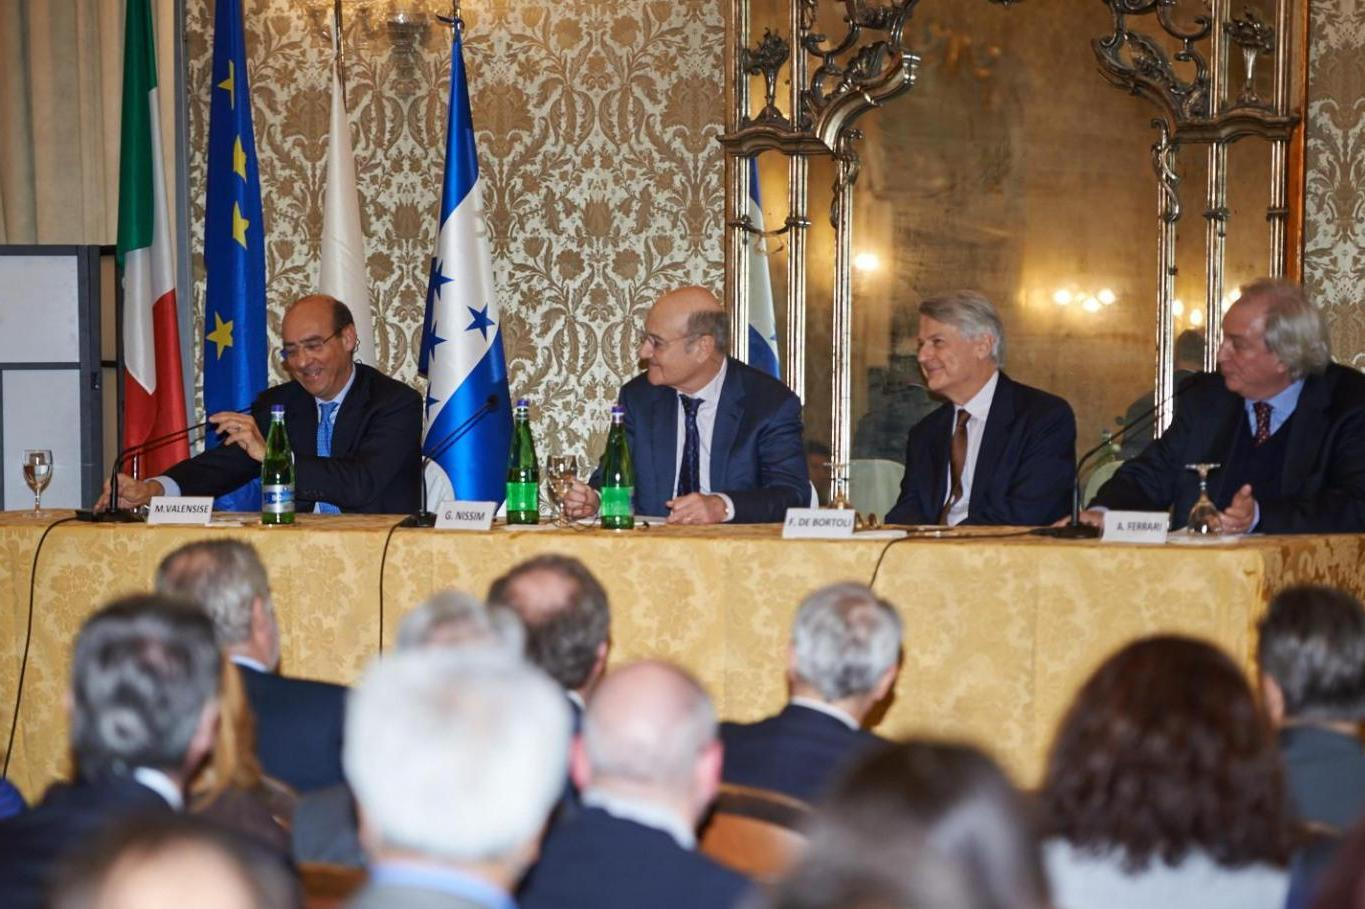 2015 - European Day of the Righteous before the Consular Corps of the Lombardy region